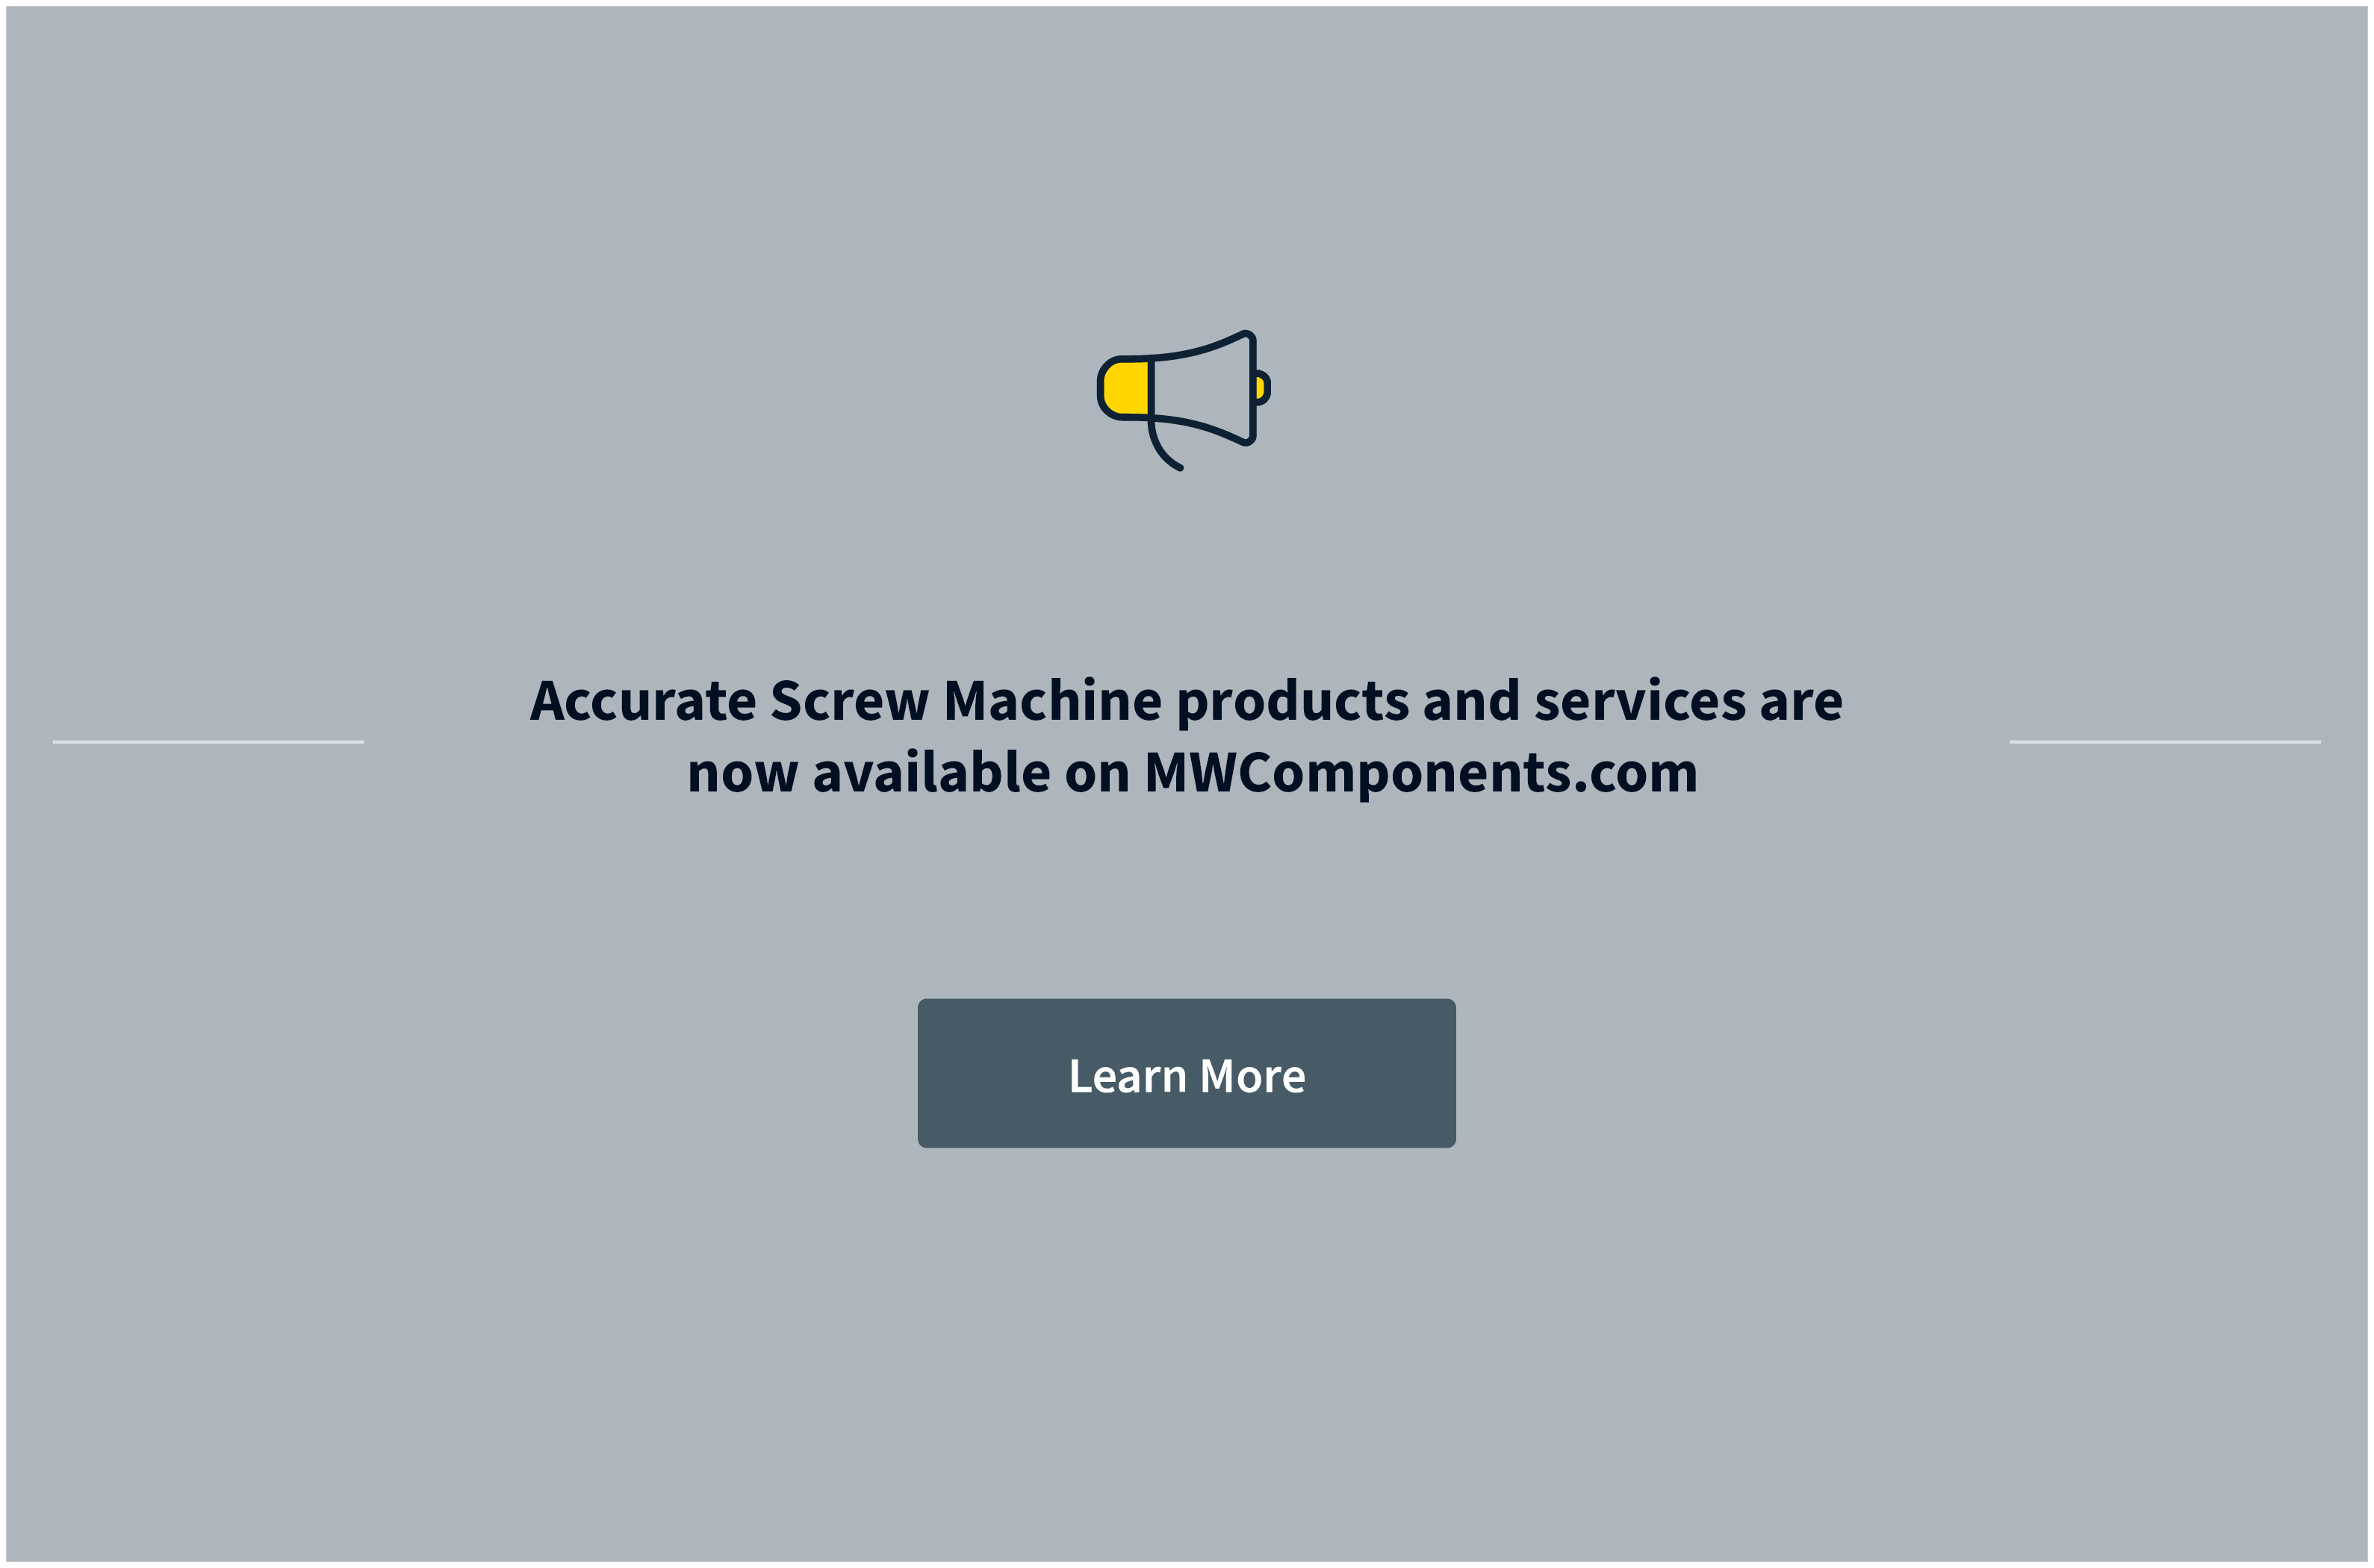 Accurate Screw Machine is now part of MW Components